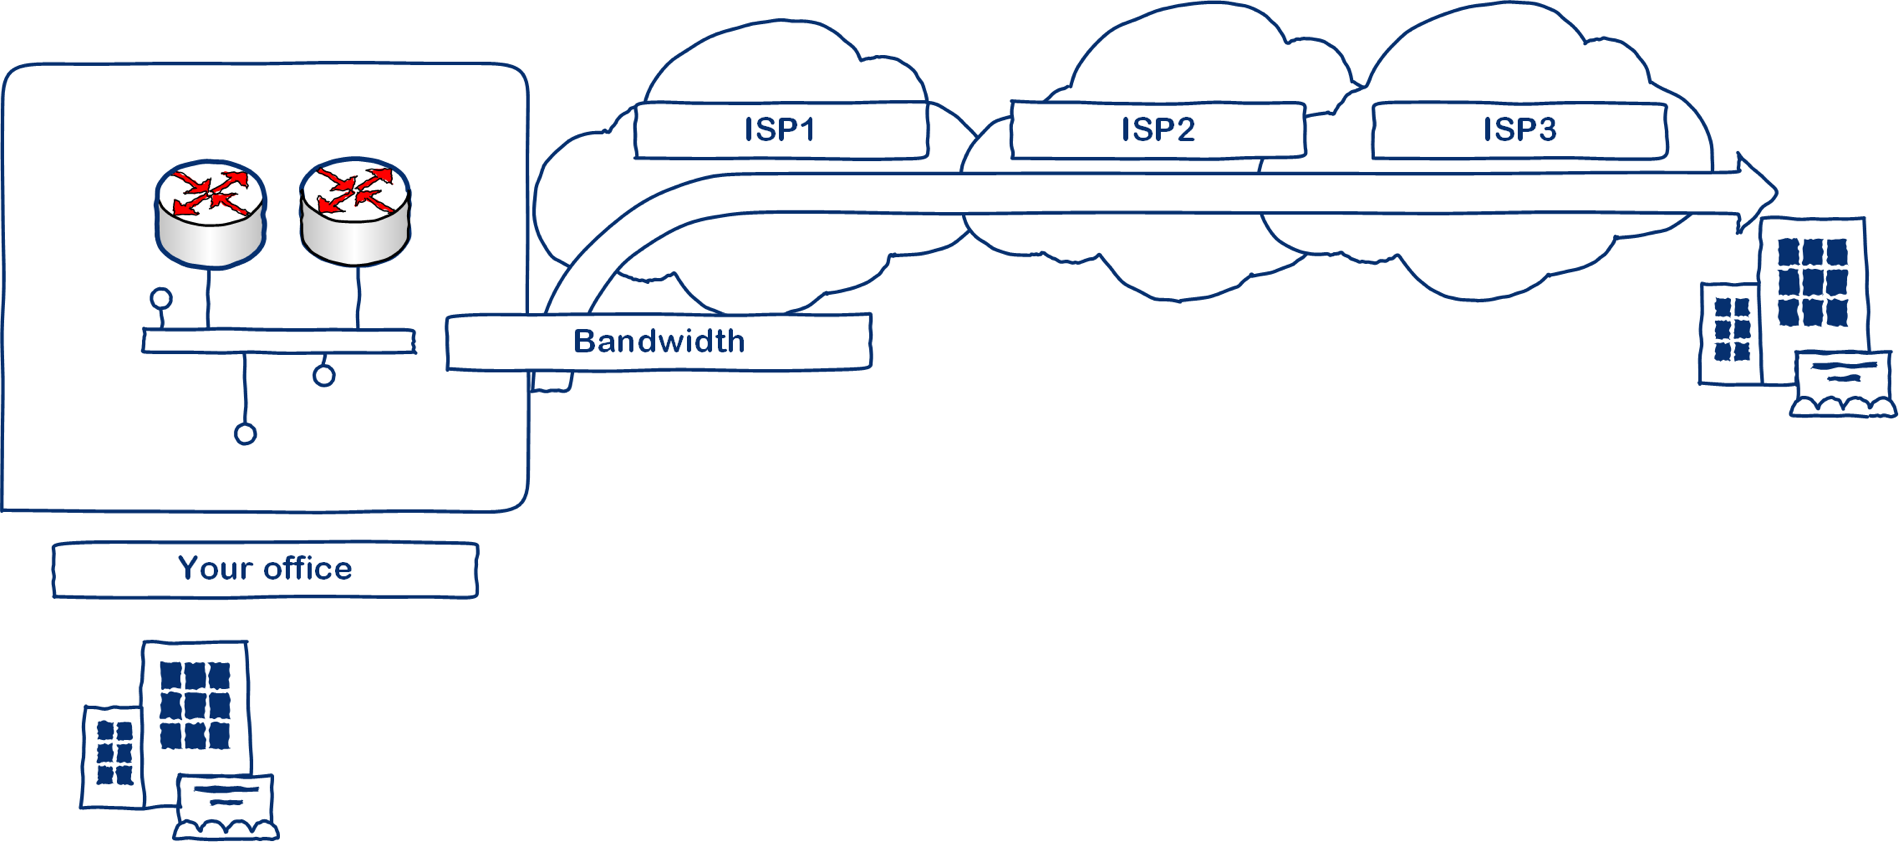 SD-WAN Services over the Internet.